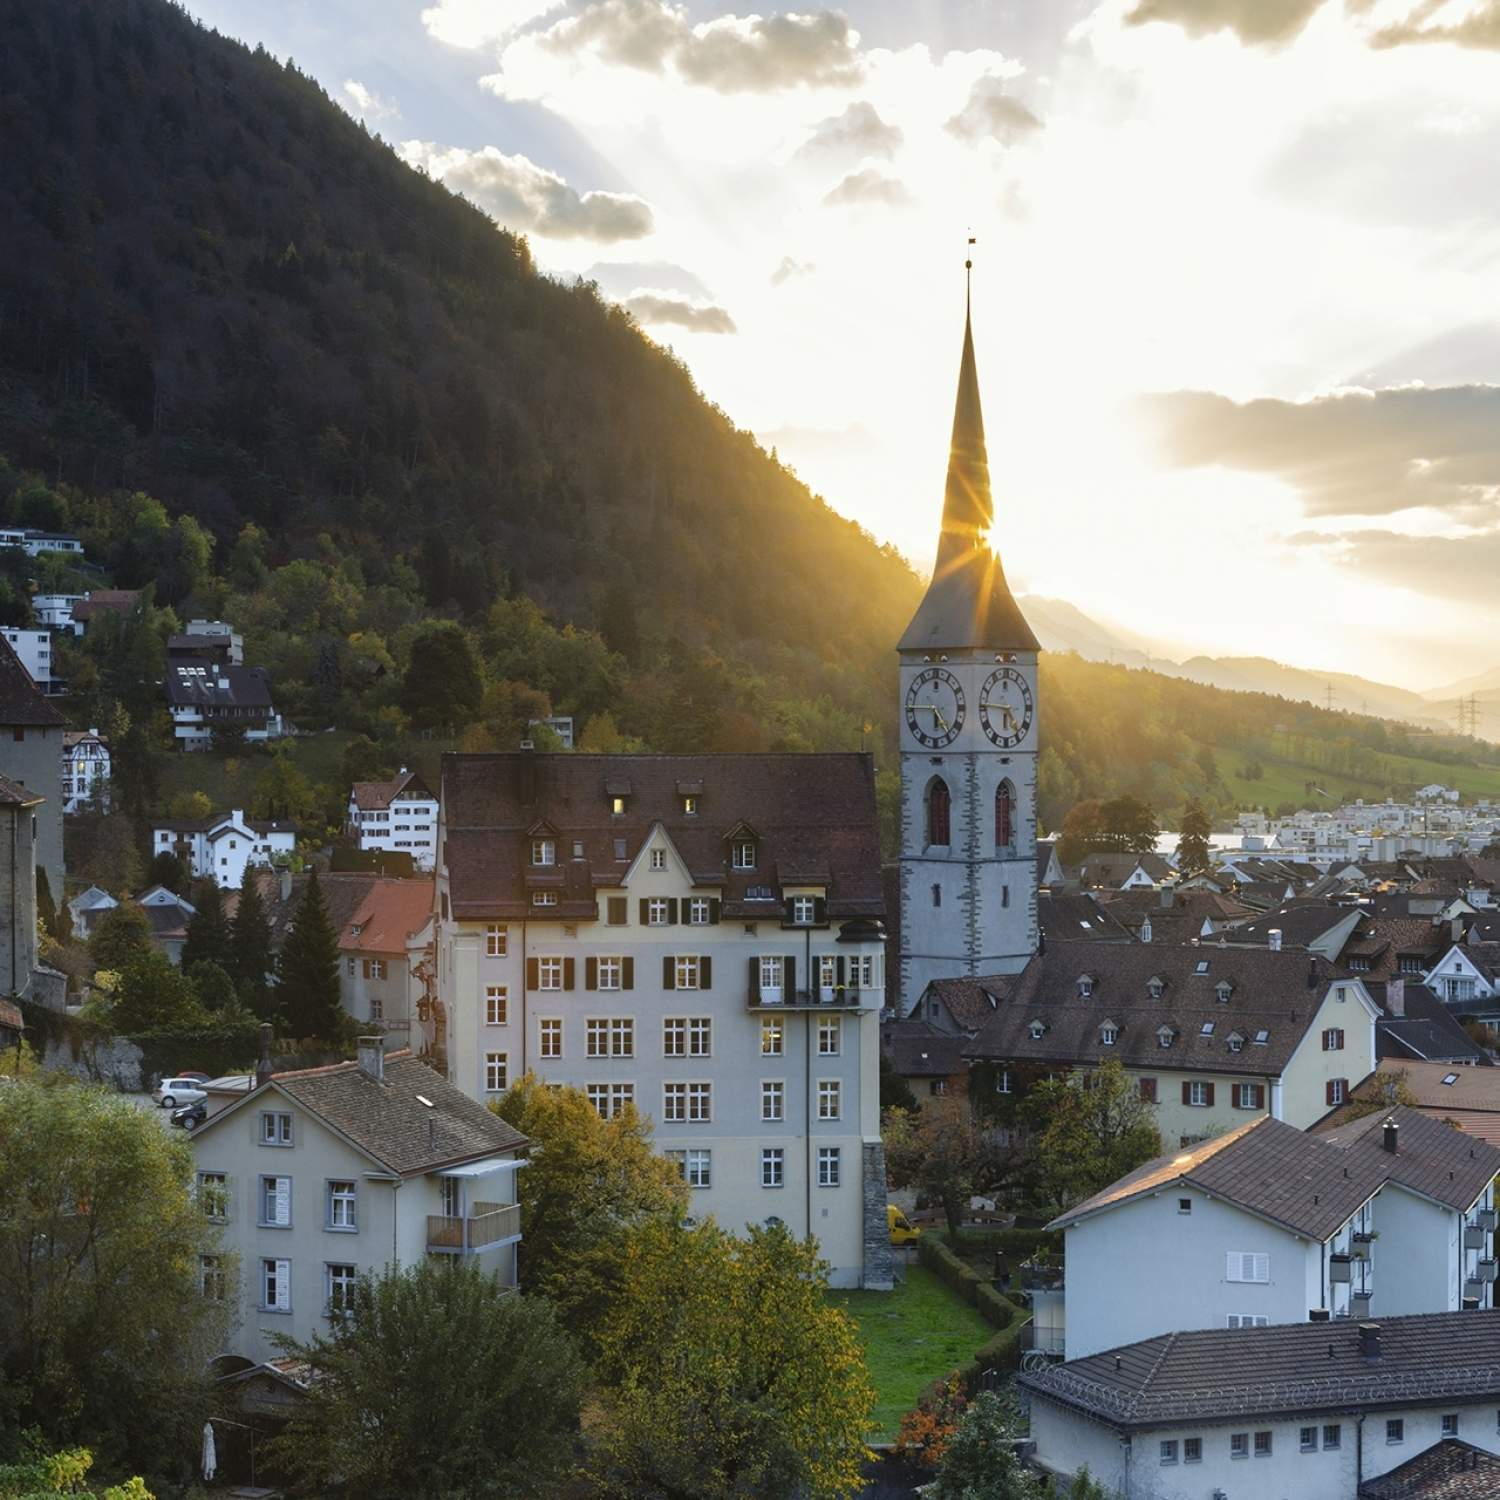 Stc8385 Chur Switzerland Tourism By Line swiss image ch Andreas Gerth